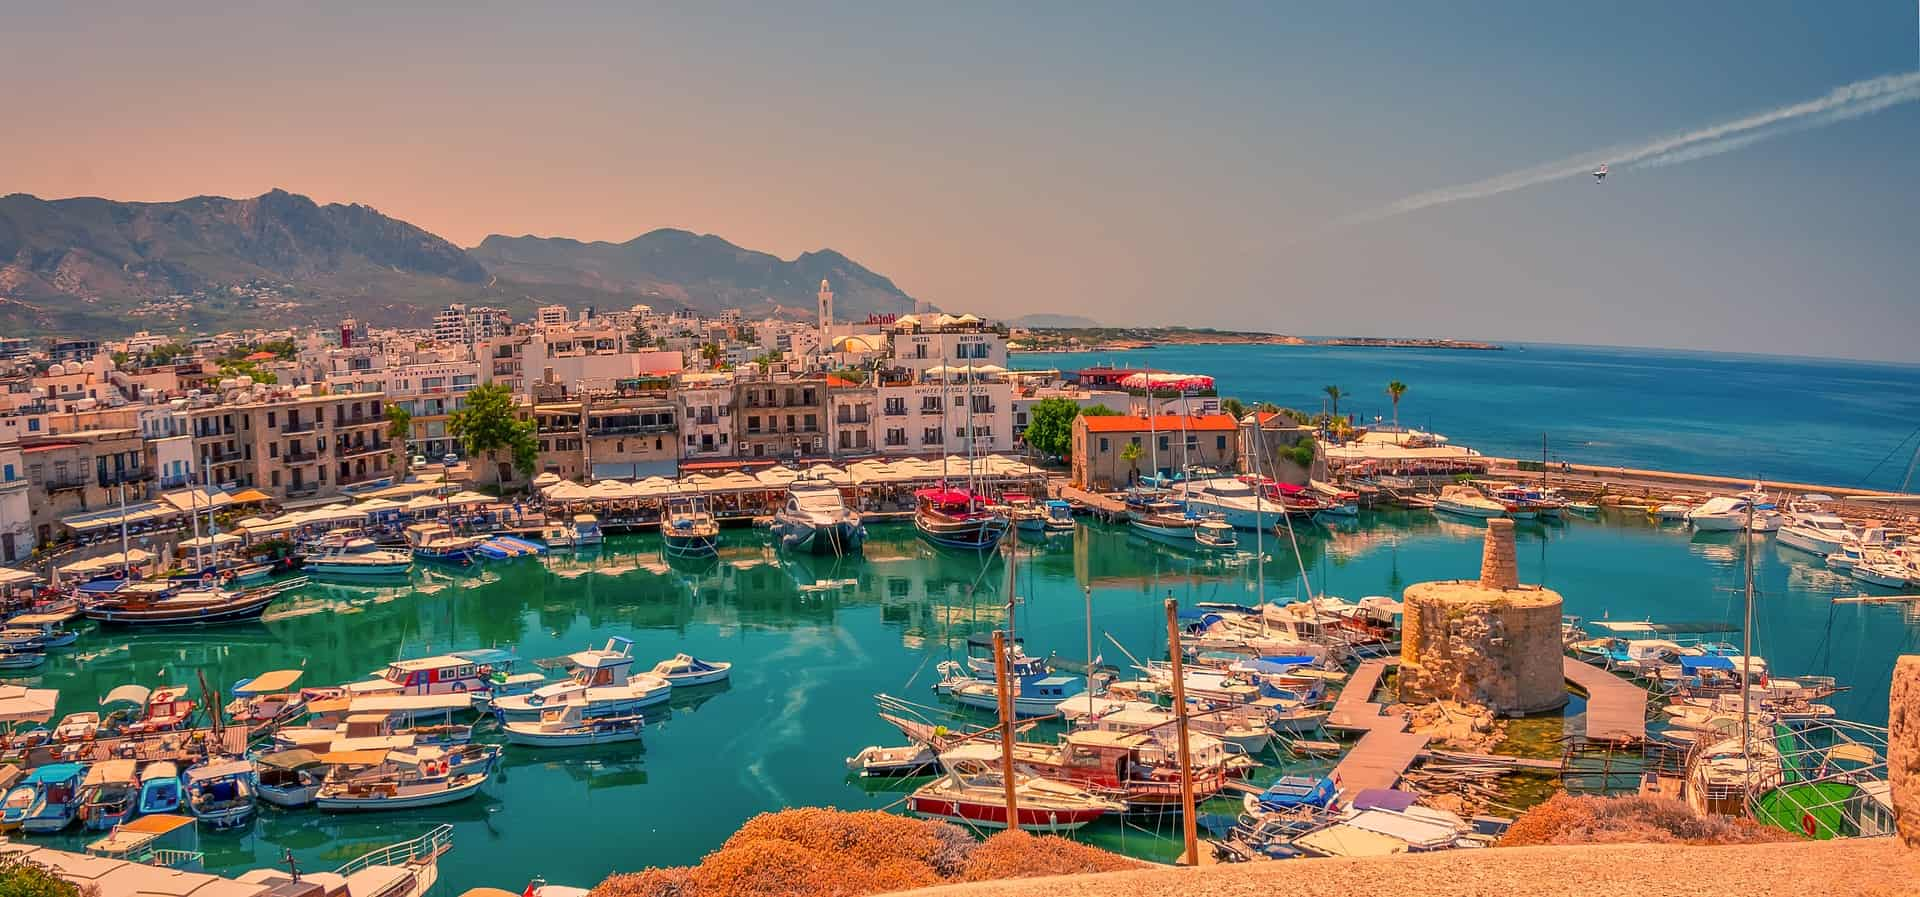 3 Inexpensive Family Vacation Spots In Europe